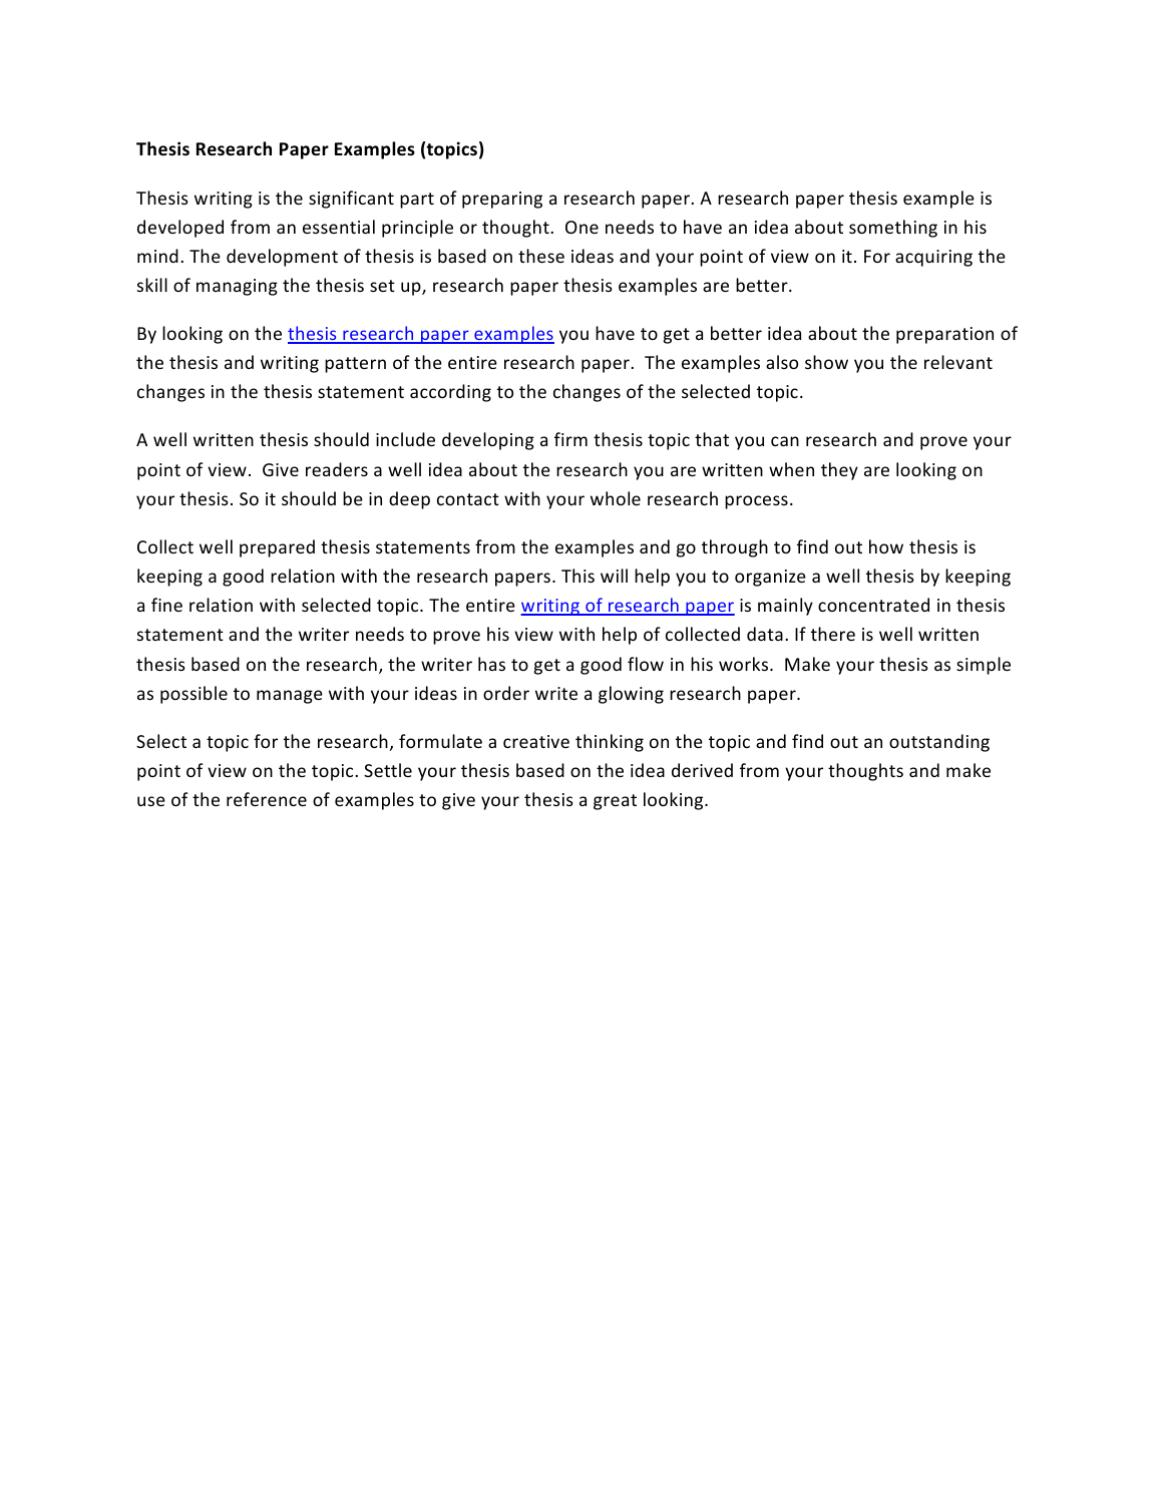 028 Ideas For Research Paper Page 1 Shocking A Topics Writing Good Social Psychology Full